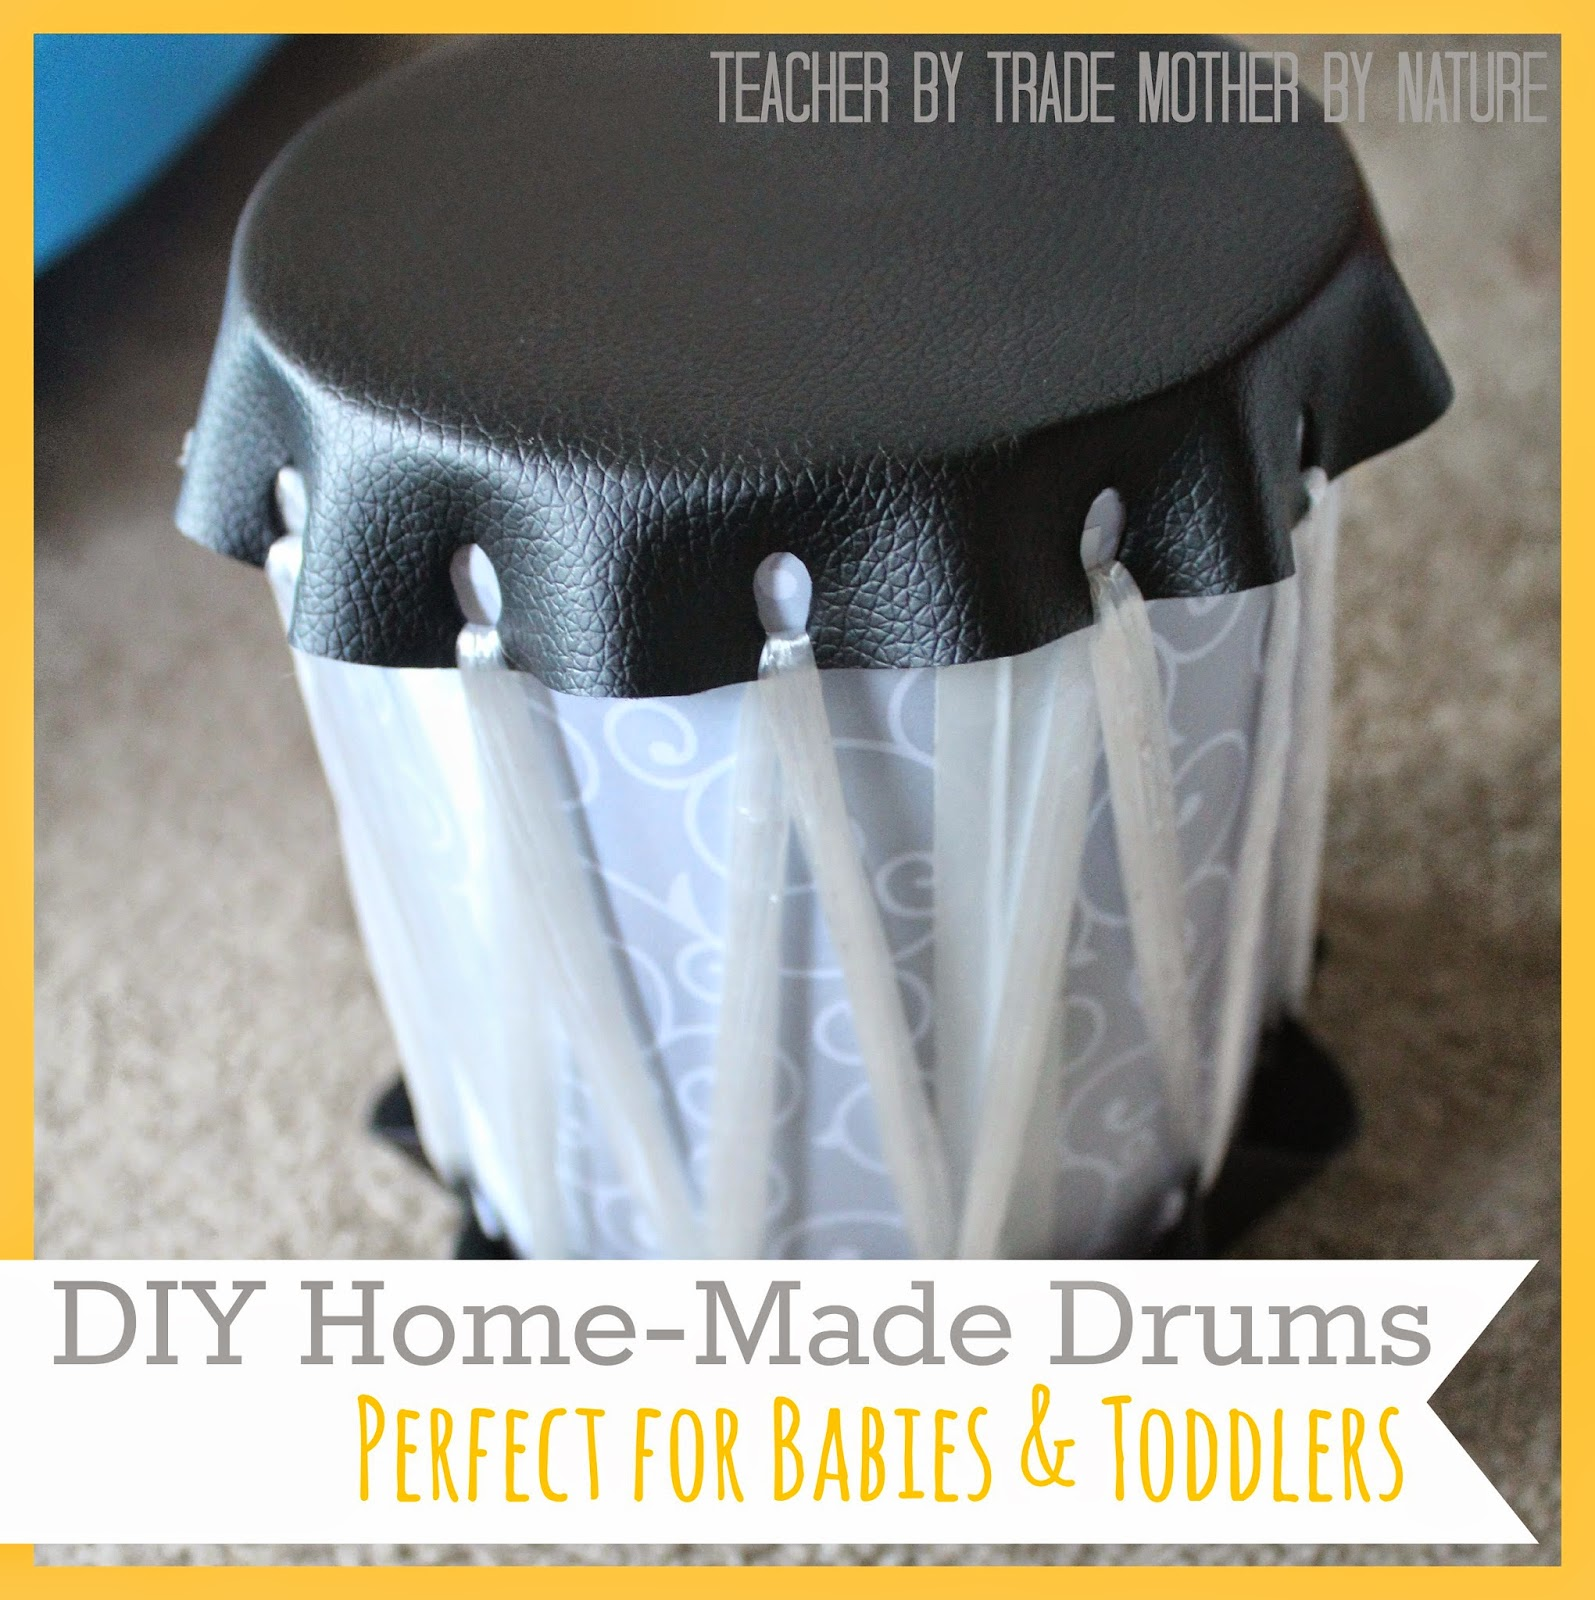 DIY Home-made Drums babies toddlers